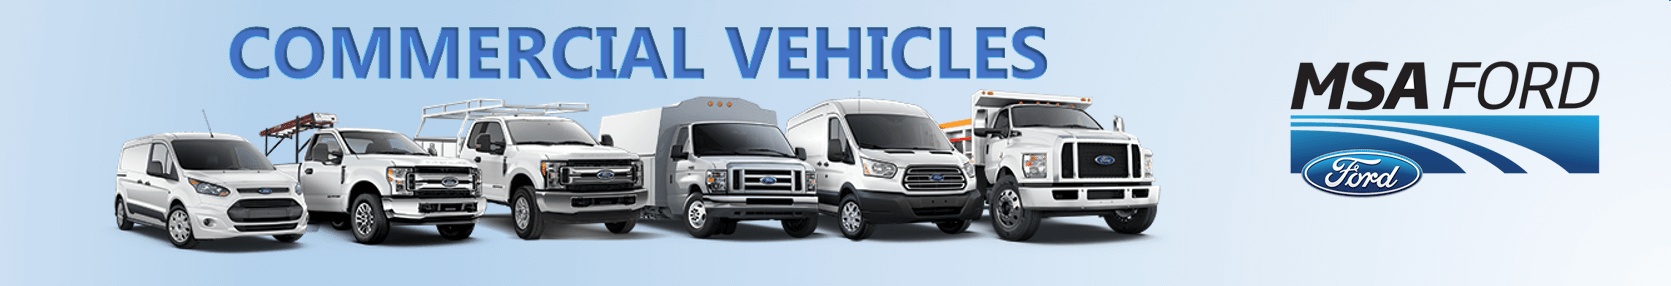 MSA Ford Commercial Vehicles Abbostford